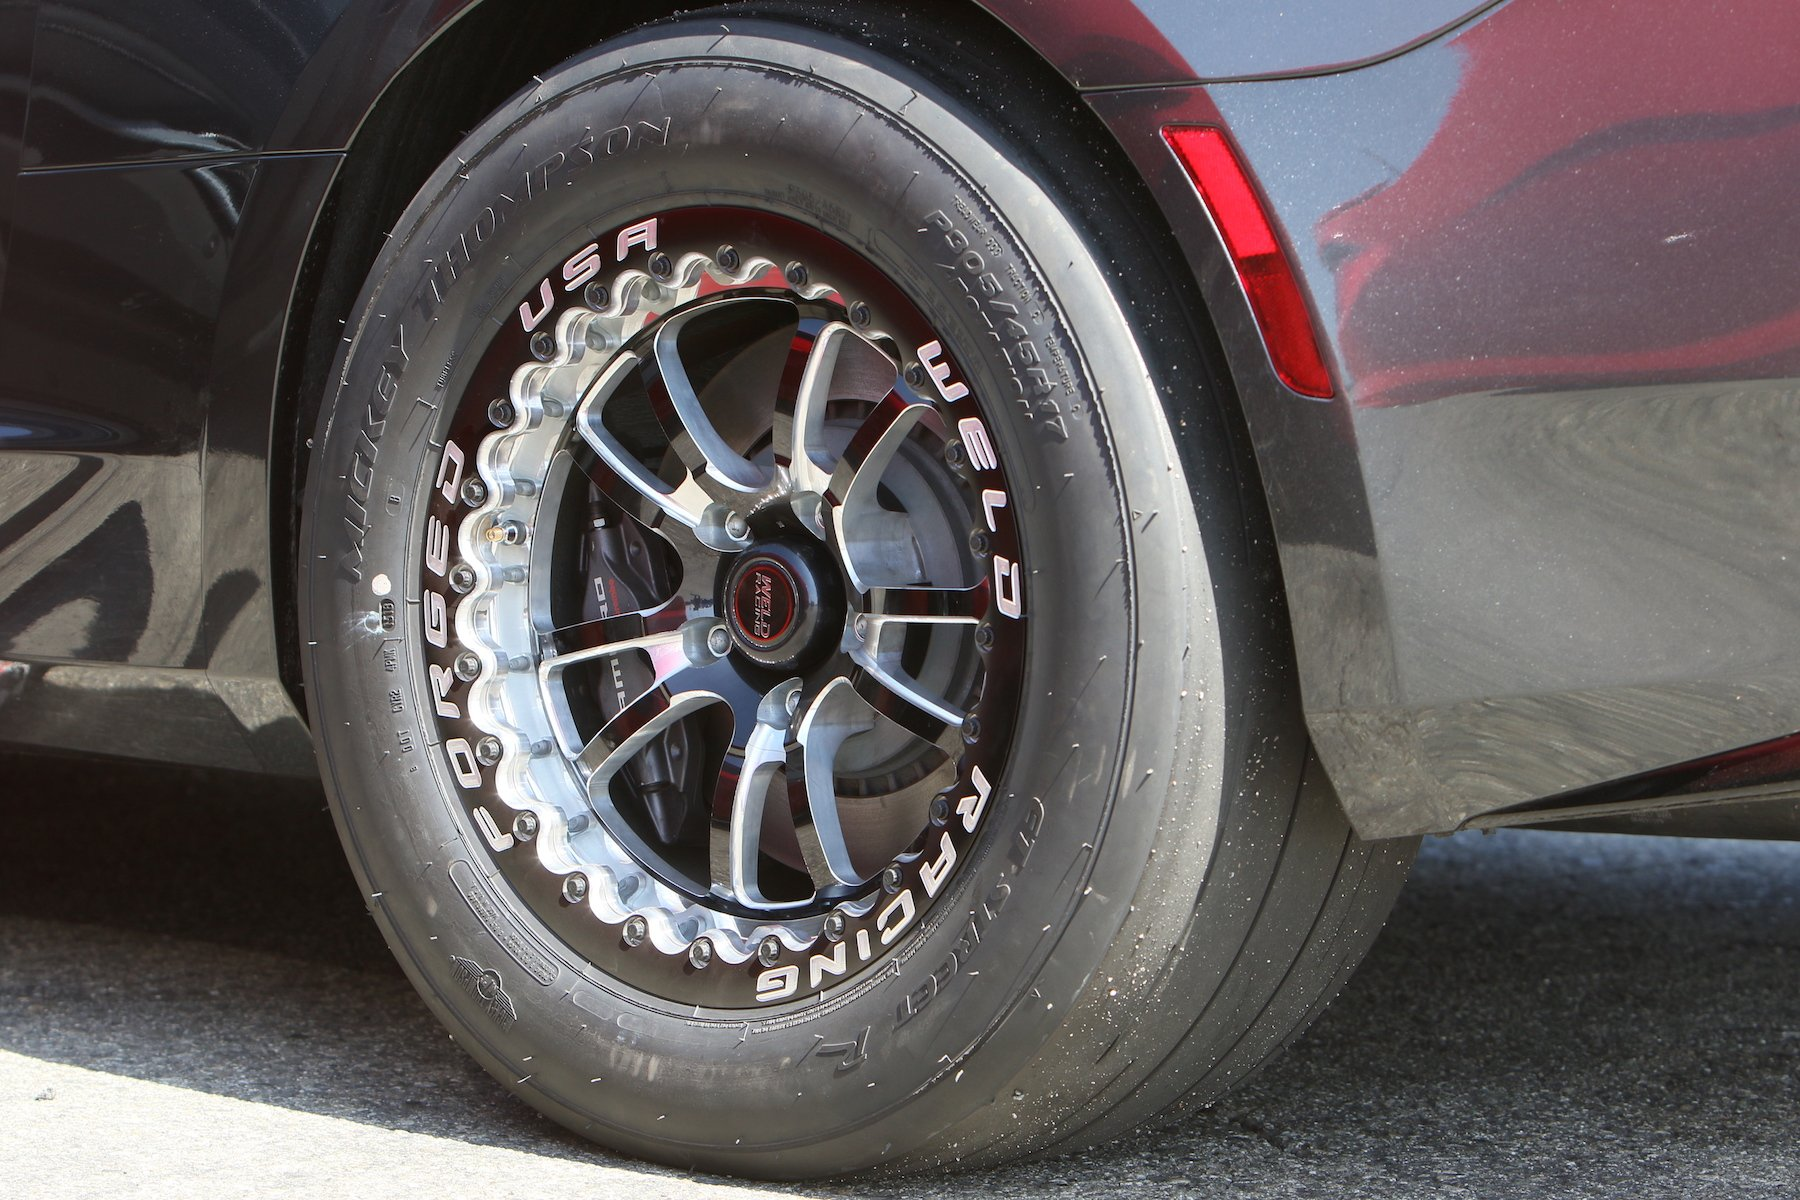 Pony Wars Drag Wheel Tire Setup For Lower Sixty Foot Times